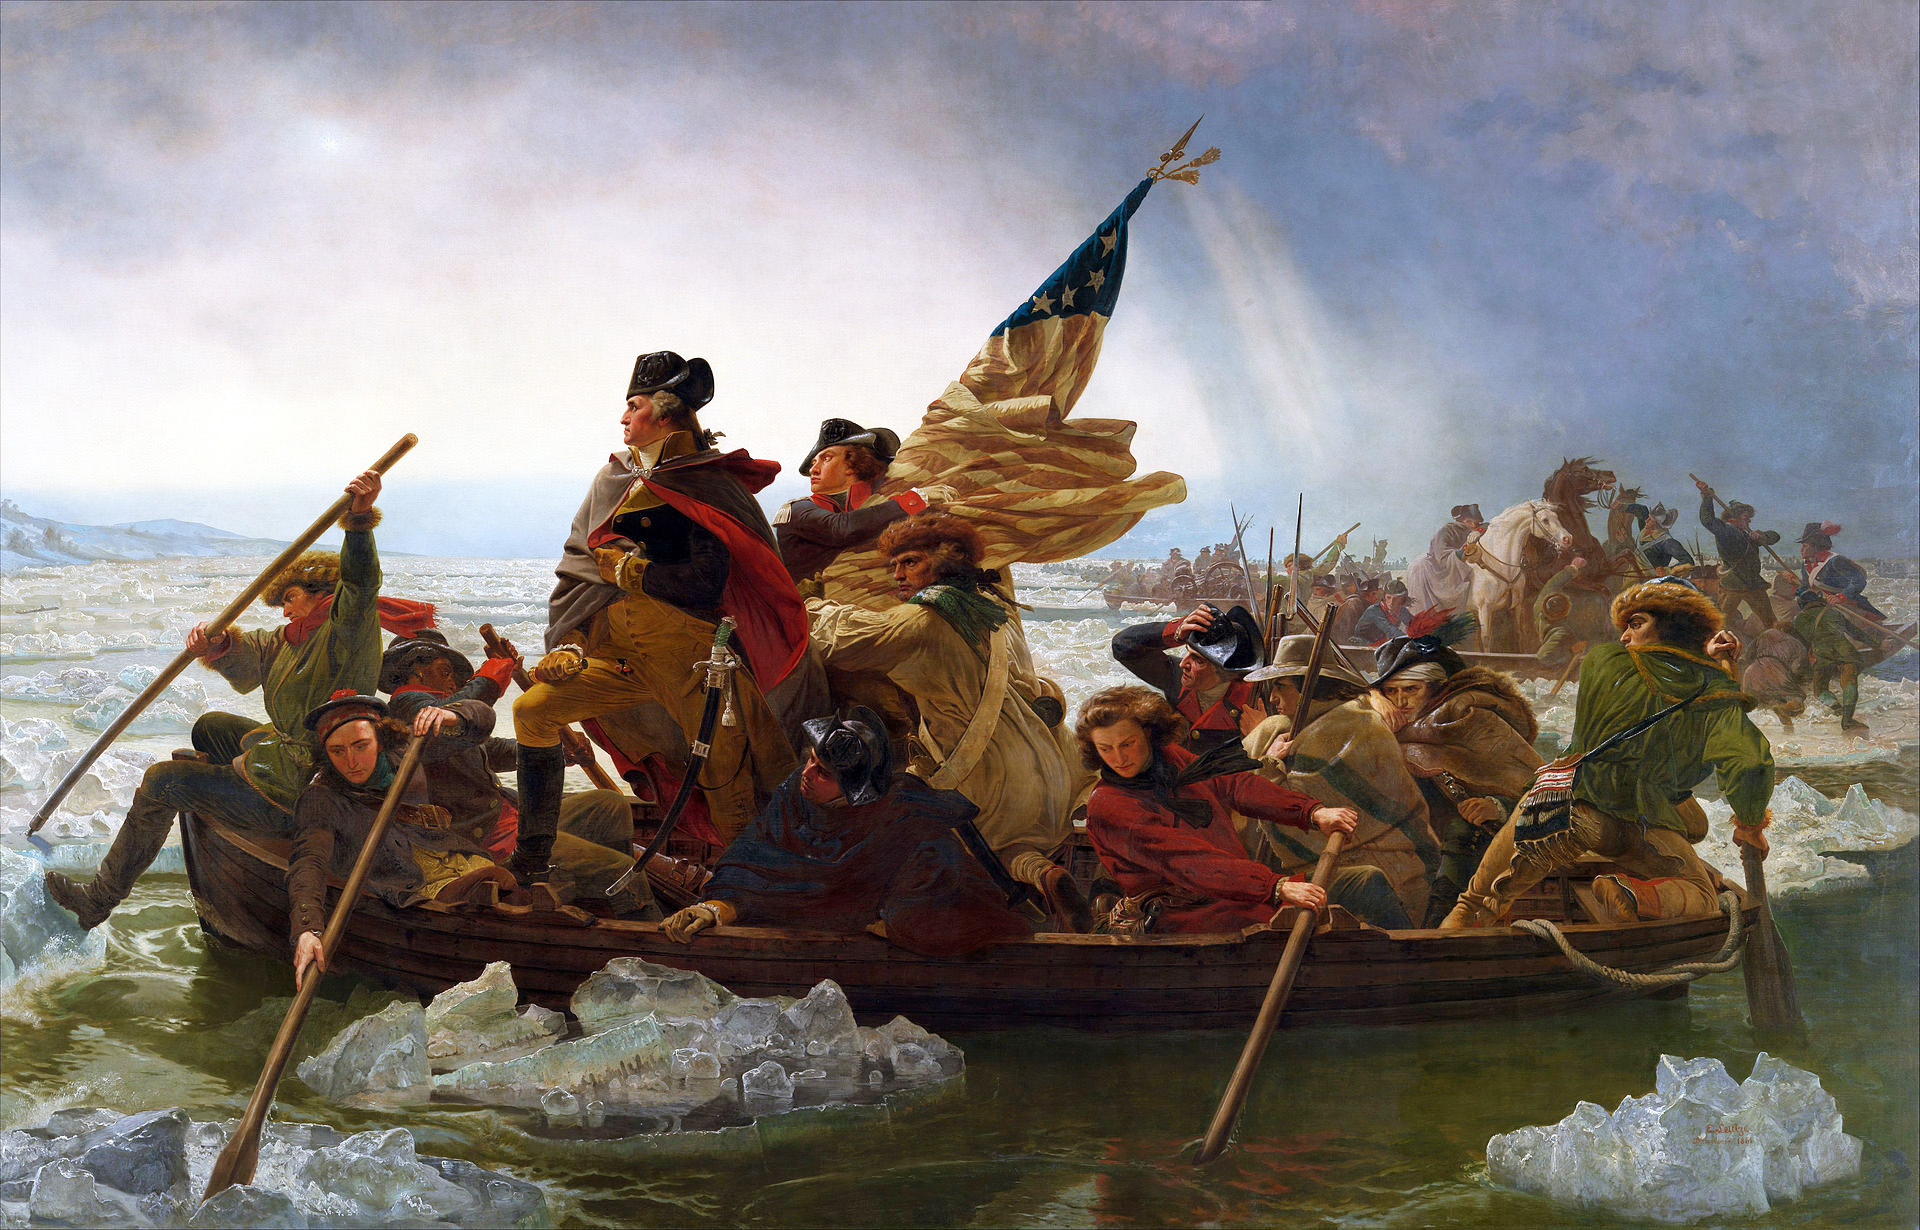 Washington Crossing the Delaware by Emanuel Leutze, 1851 @The Metropolitan Museum of Art